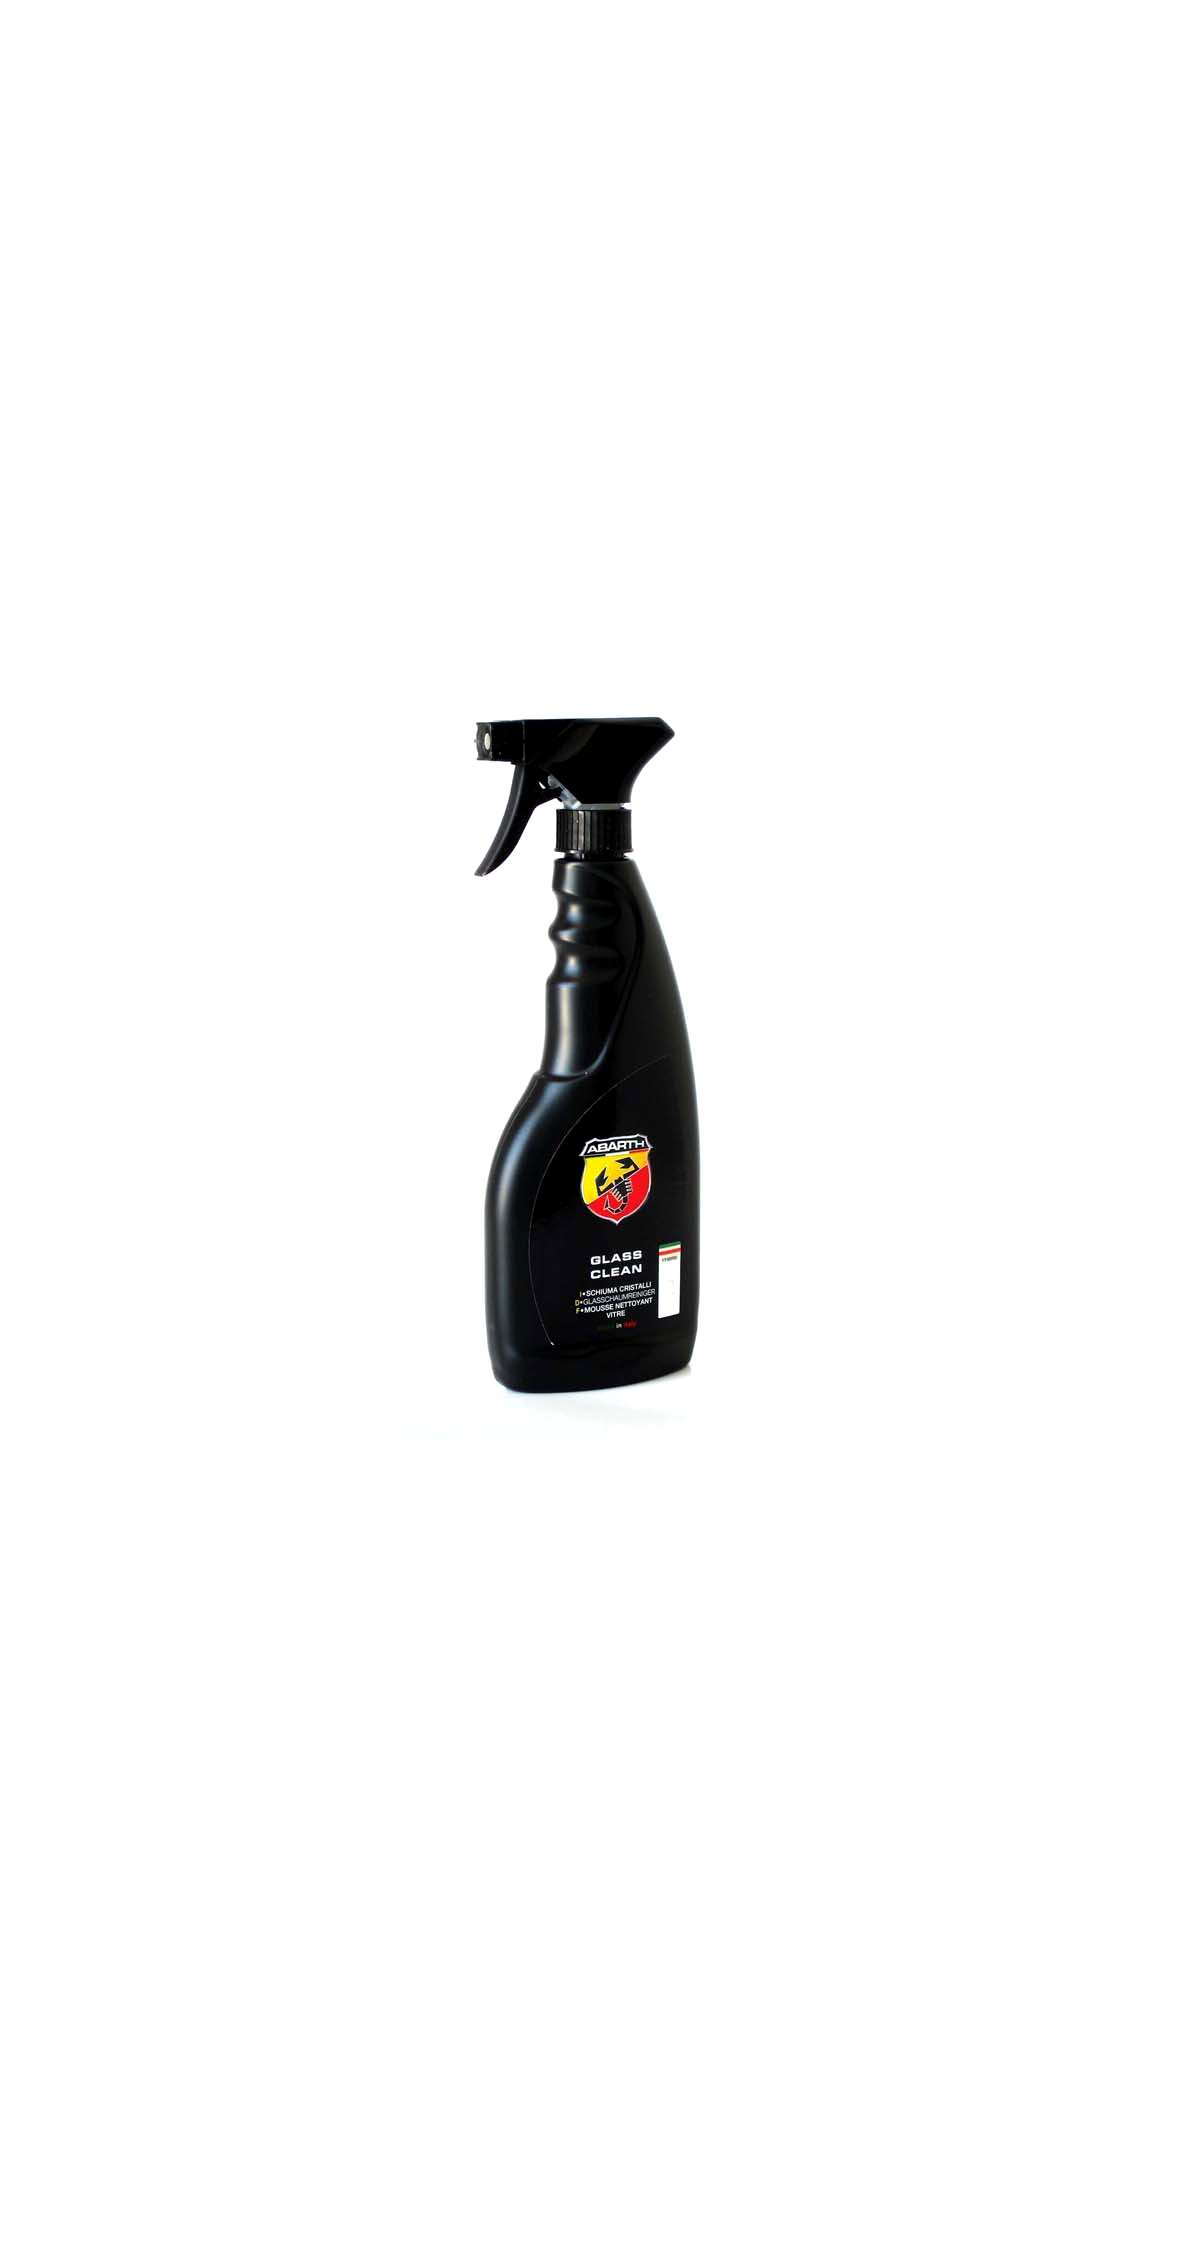 Photo of Pulizia con Abarth Glass Clean by Green Star